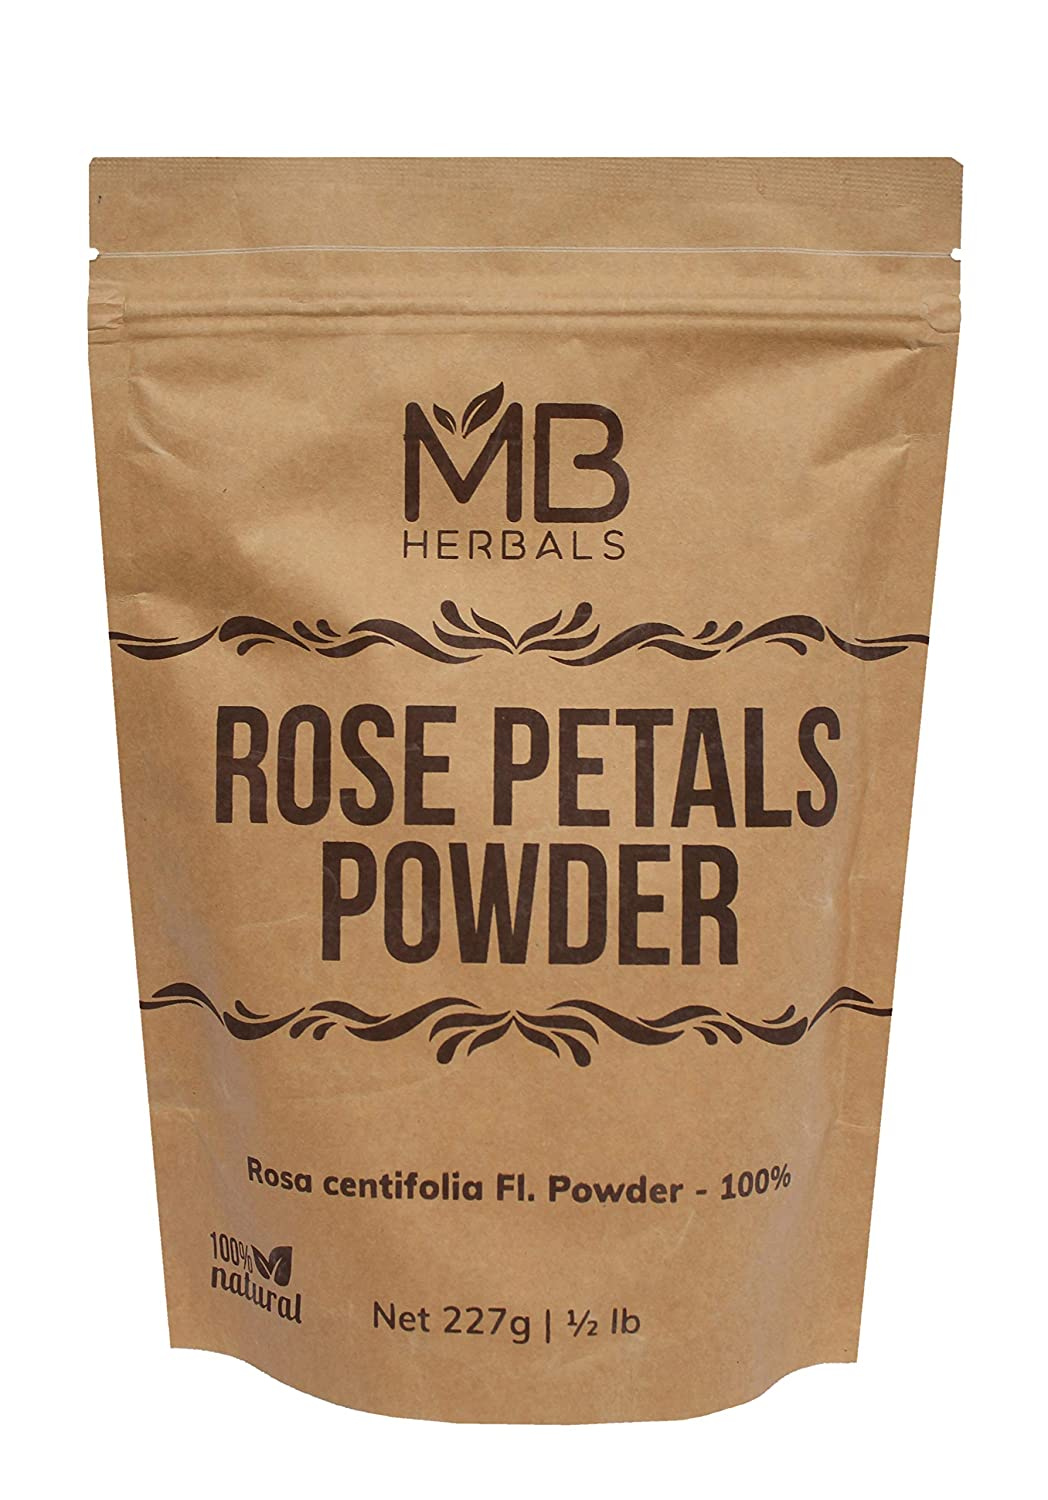 MB Herbals Rose Petals Powder 100g (3.5oz) | Rosa centifolia Natural Face Packs & Facial Mask Formulations | 100% Pure | Chemical-Free | Preservative-Free | No Artificial Color